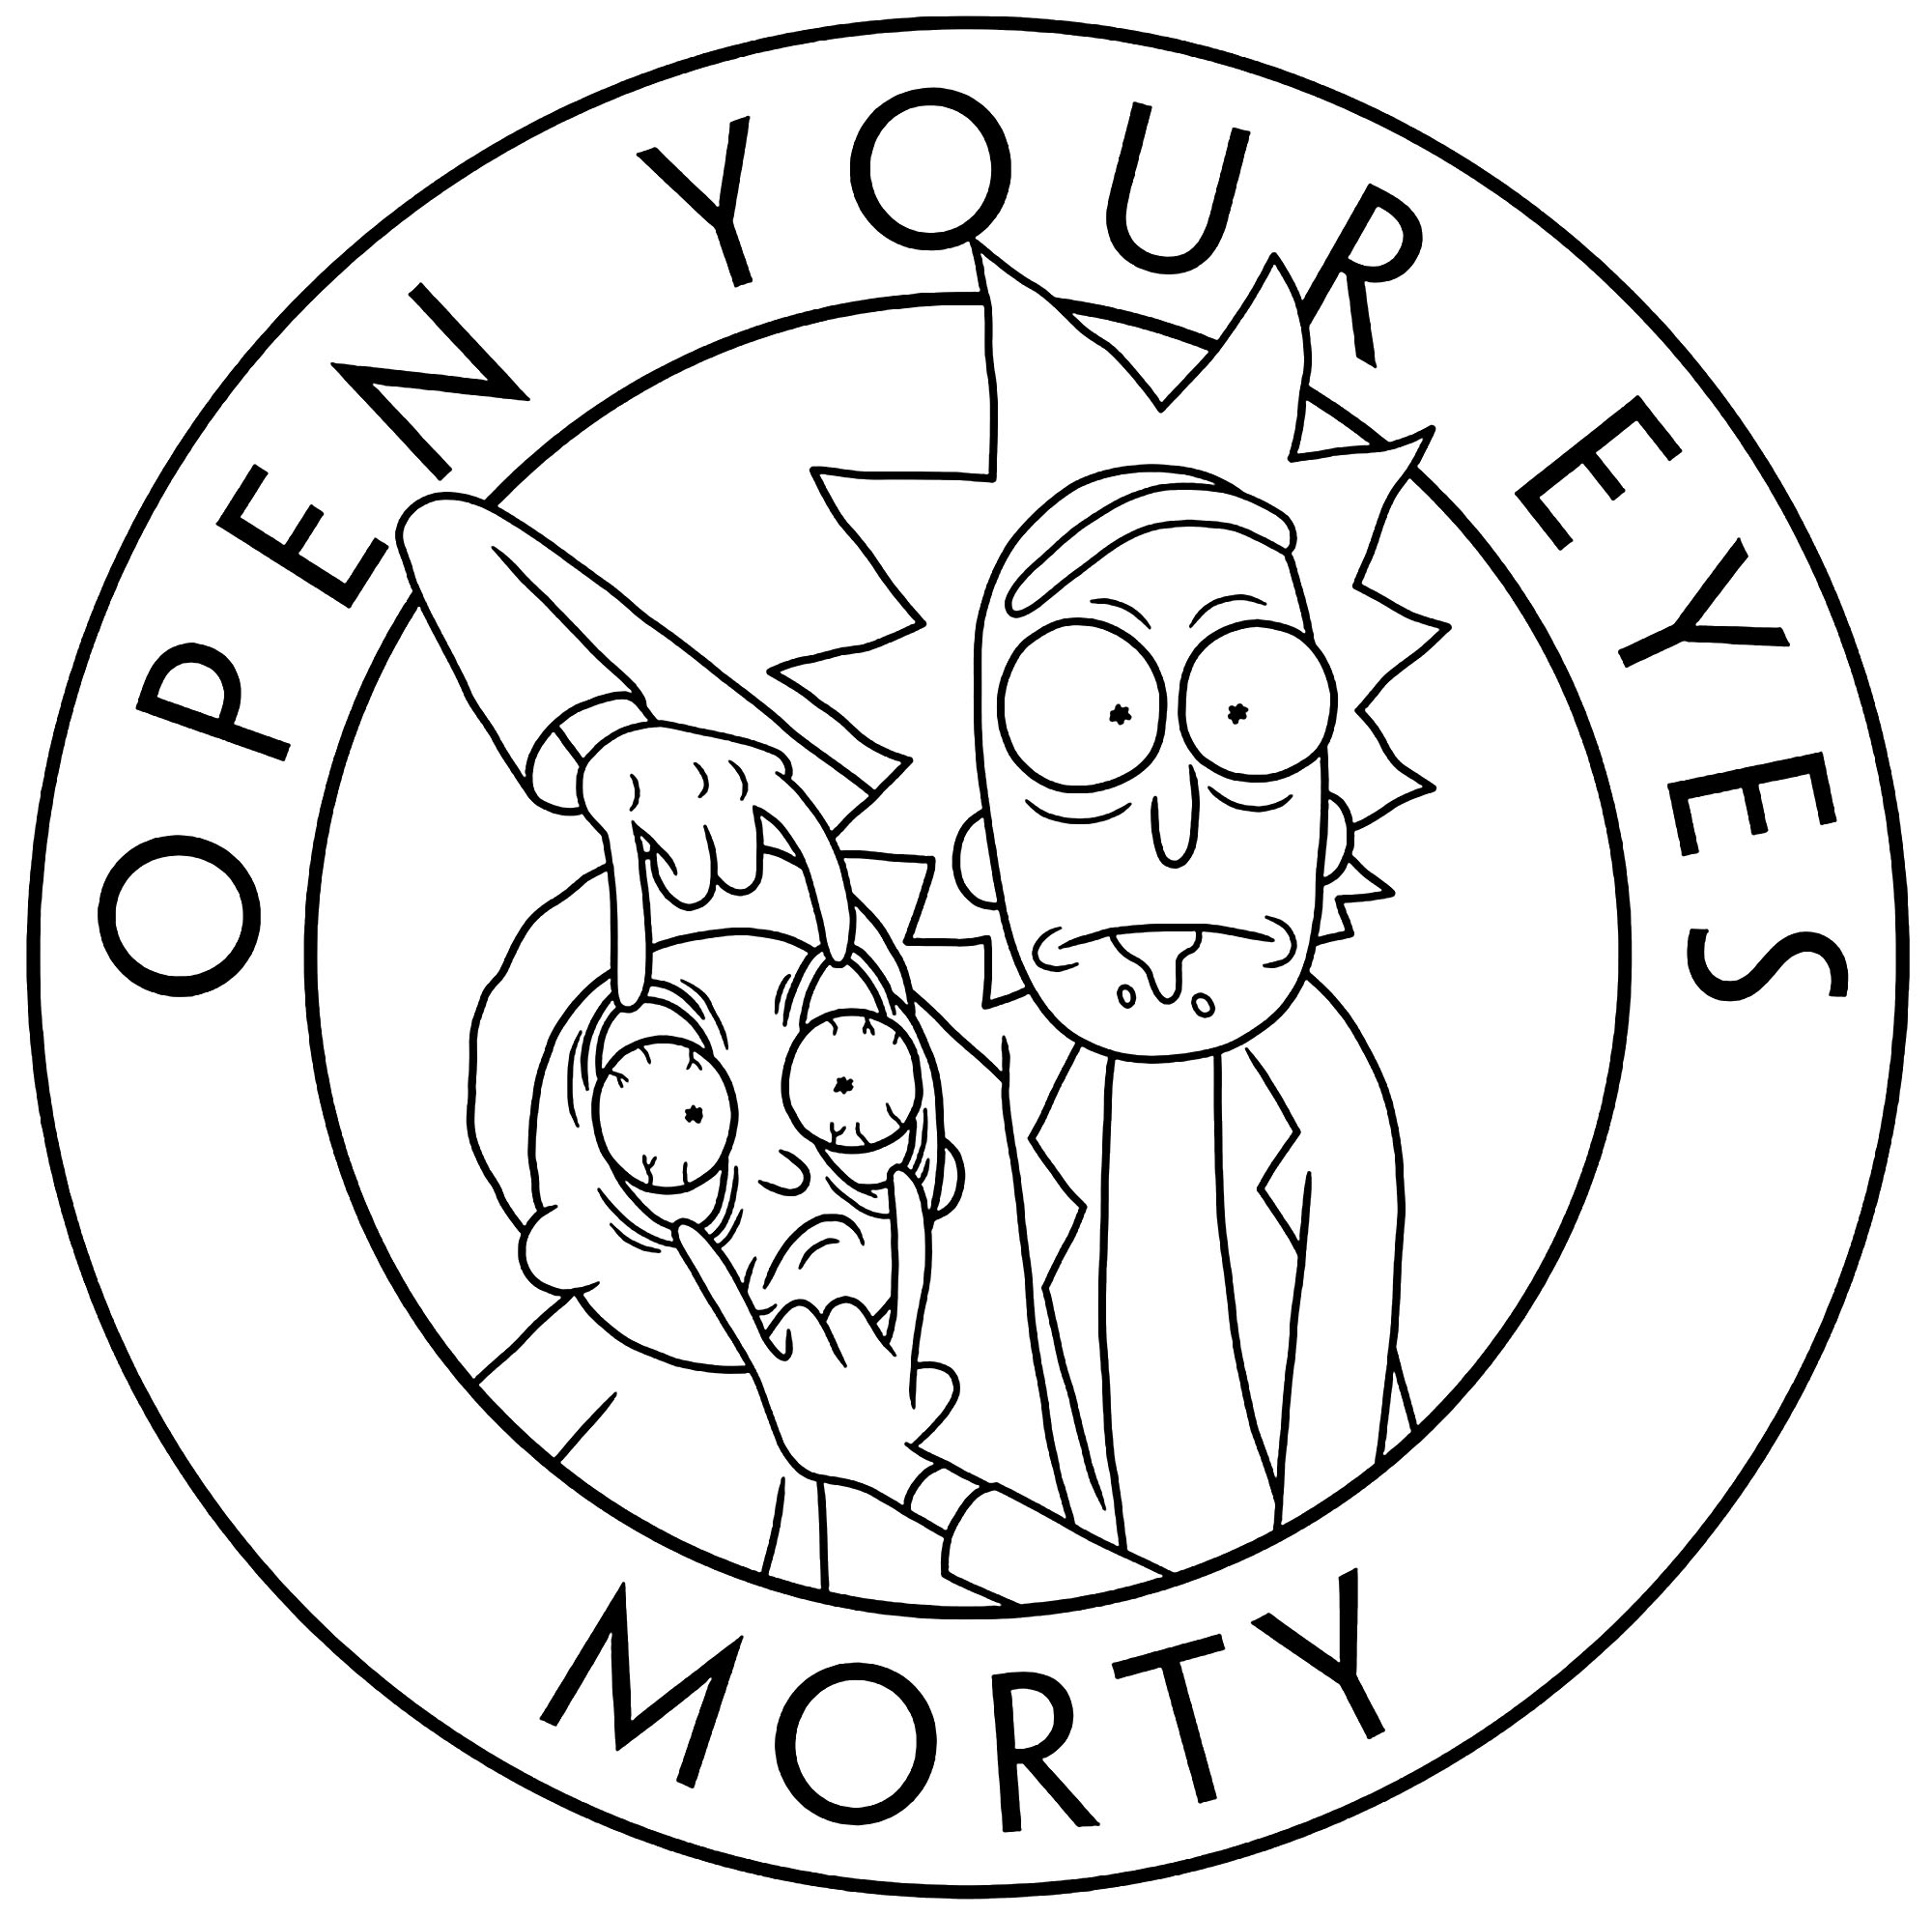 Simple coloring page with Rick and Morty and the text 'Open your Eyes'